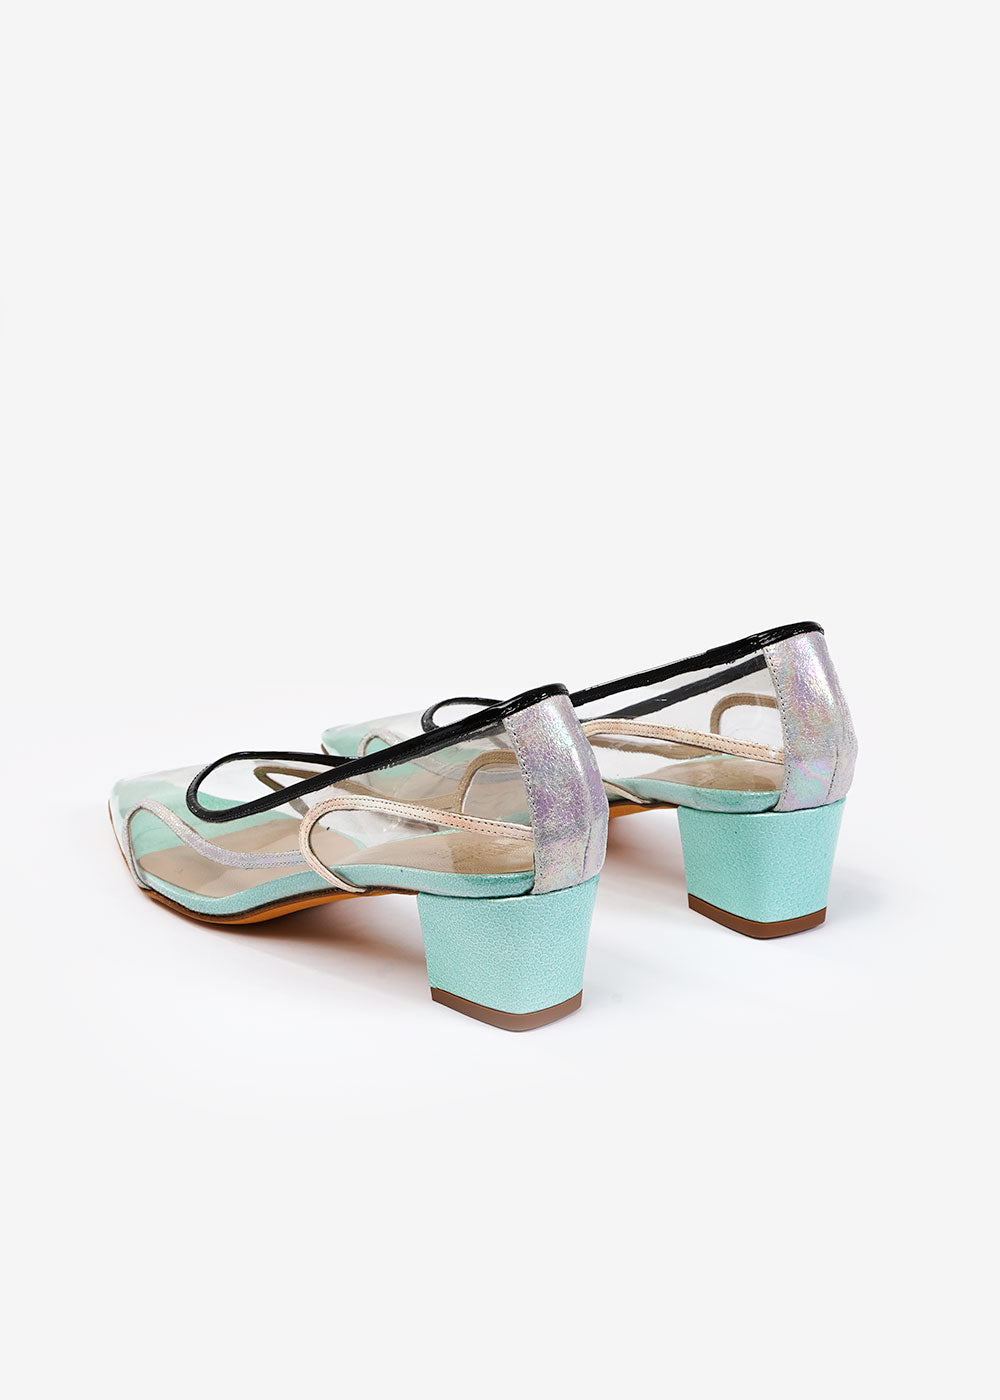 Maryam Nassir Zadeh Aqua Bead Naima Pump — Shop sustainable fashion and slow fashion at New Classics Studios